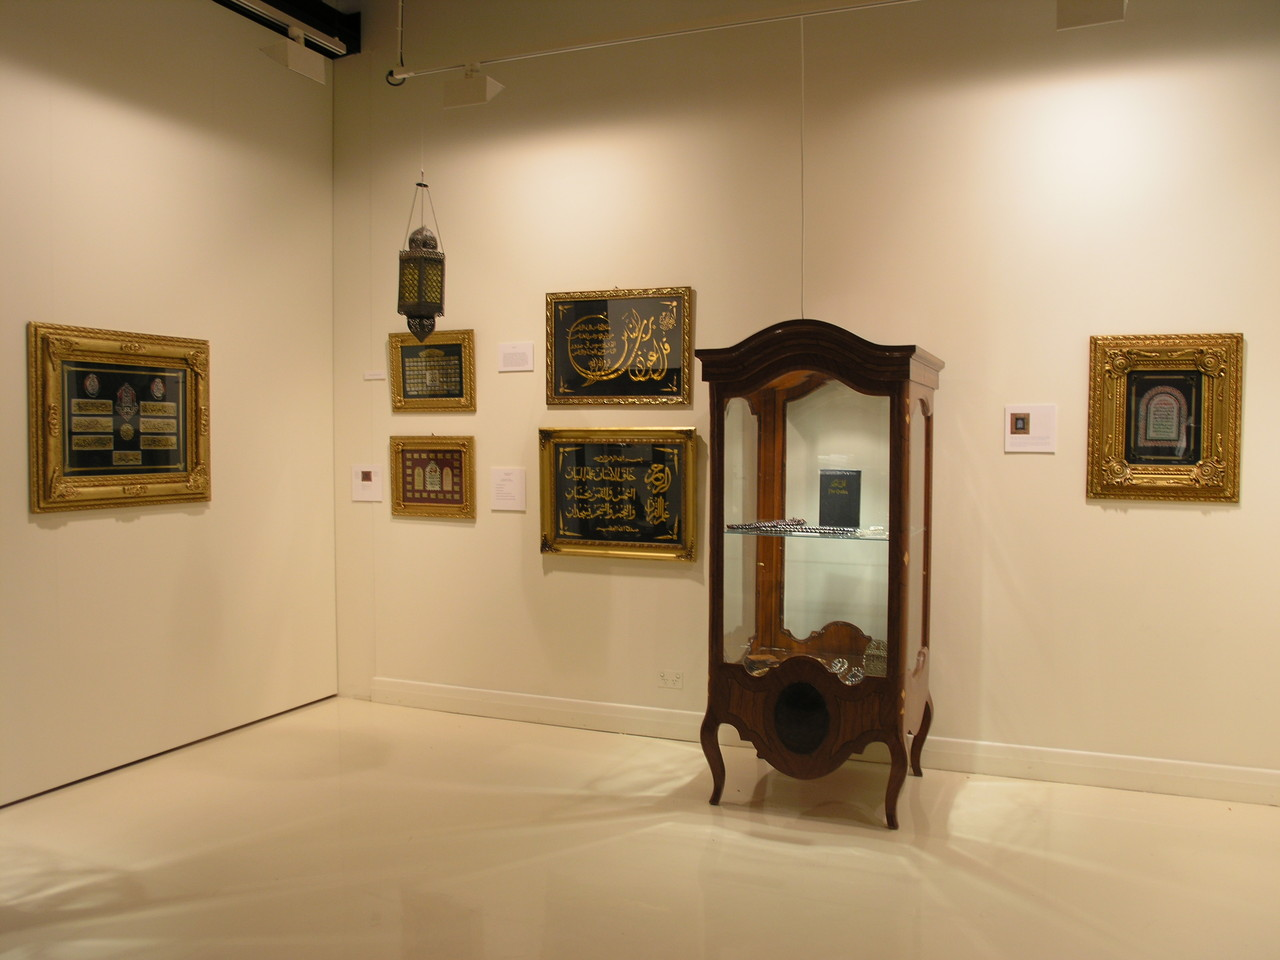 Display at Counihan Gallery, Victoria